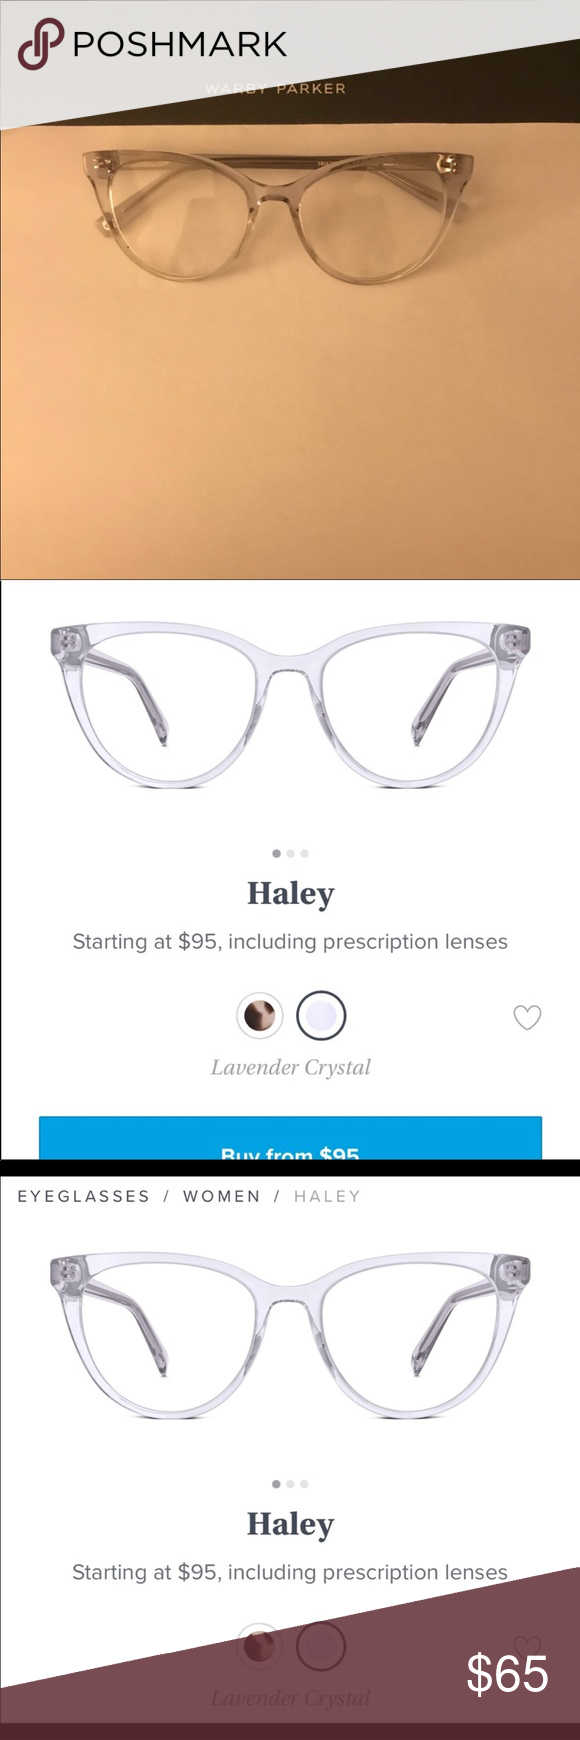 "8f810d9407 Warby Parker ""Haley"" eye glasses Warby Parker ""Haley"" Eyeglass Frames in  Lavender"